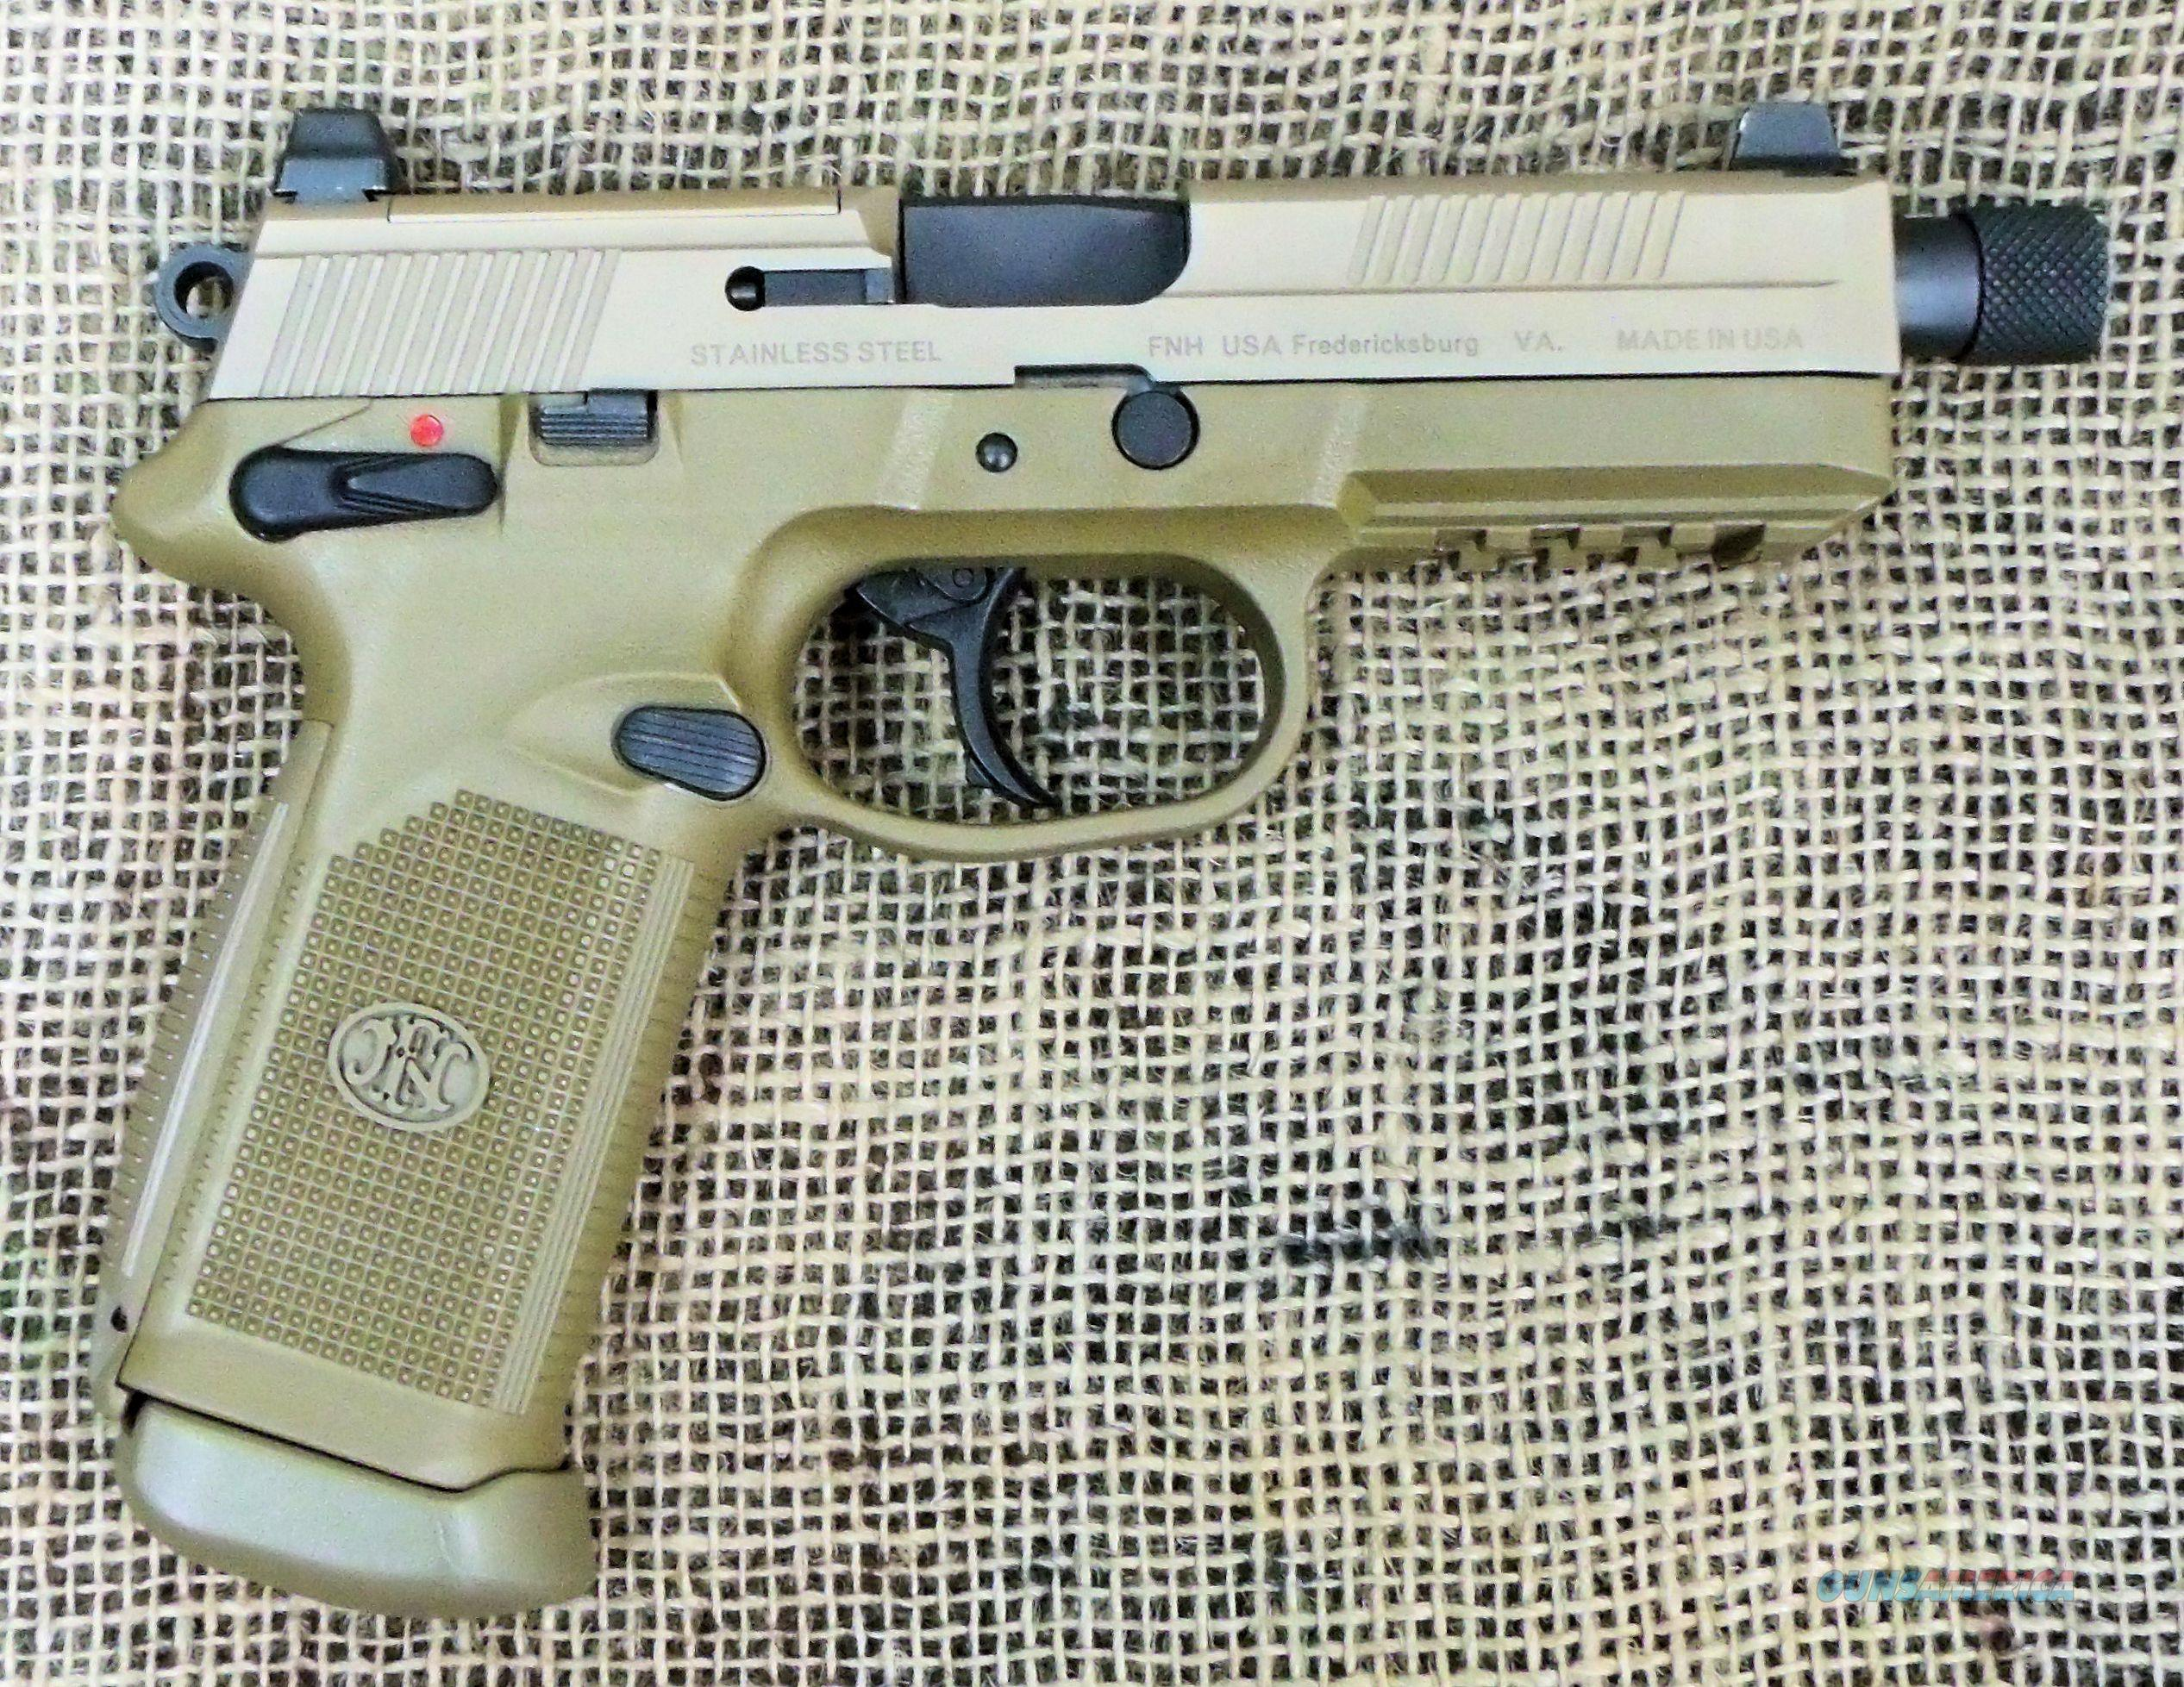 FNH Model FNX-45 Tactical, 45ACP Cal.  Guns > Pistols > FNH - Fabrique Nationale (FN) Pistols > FNX